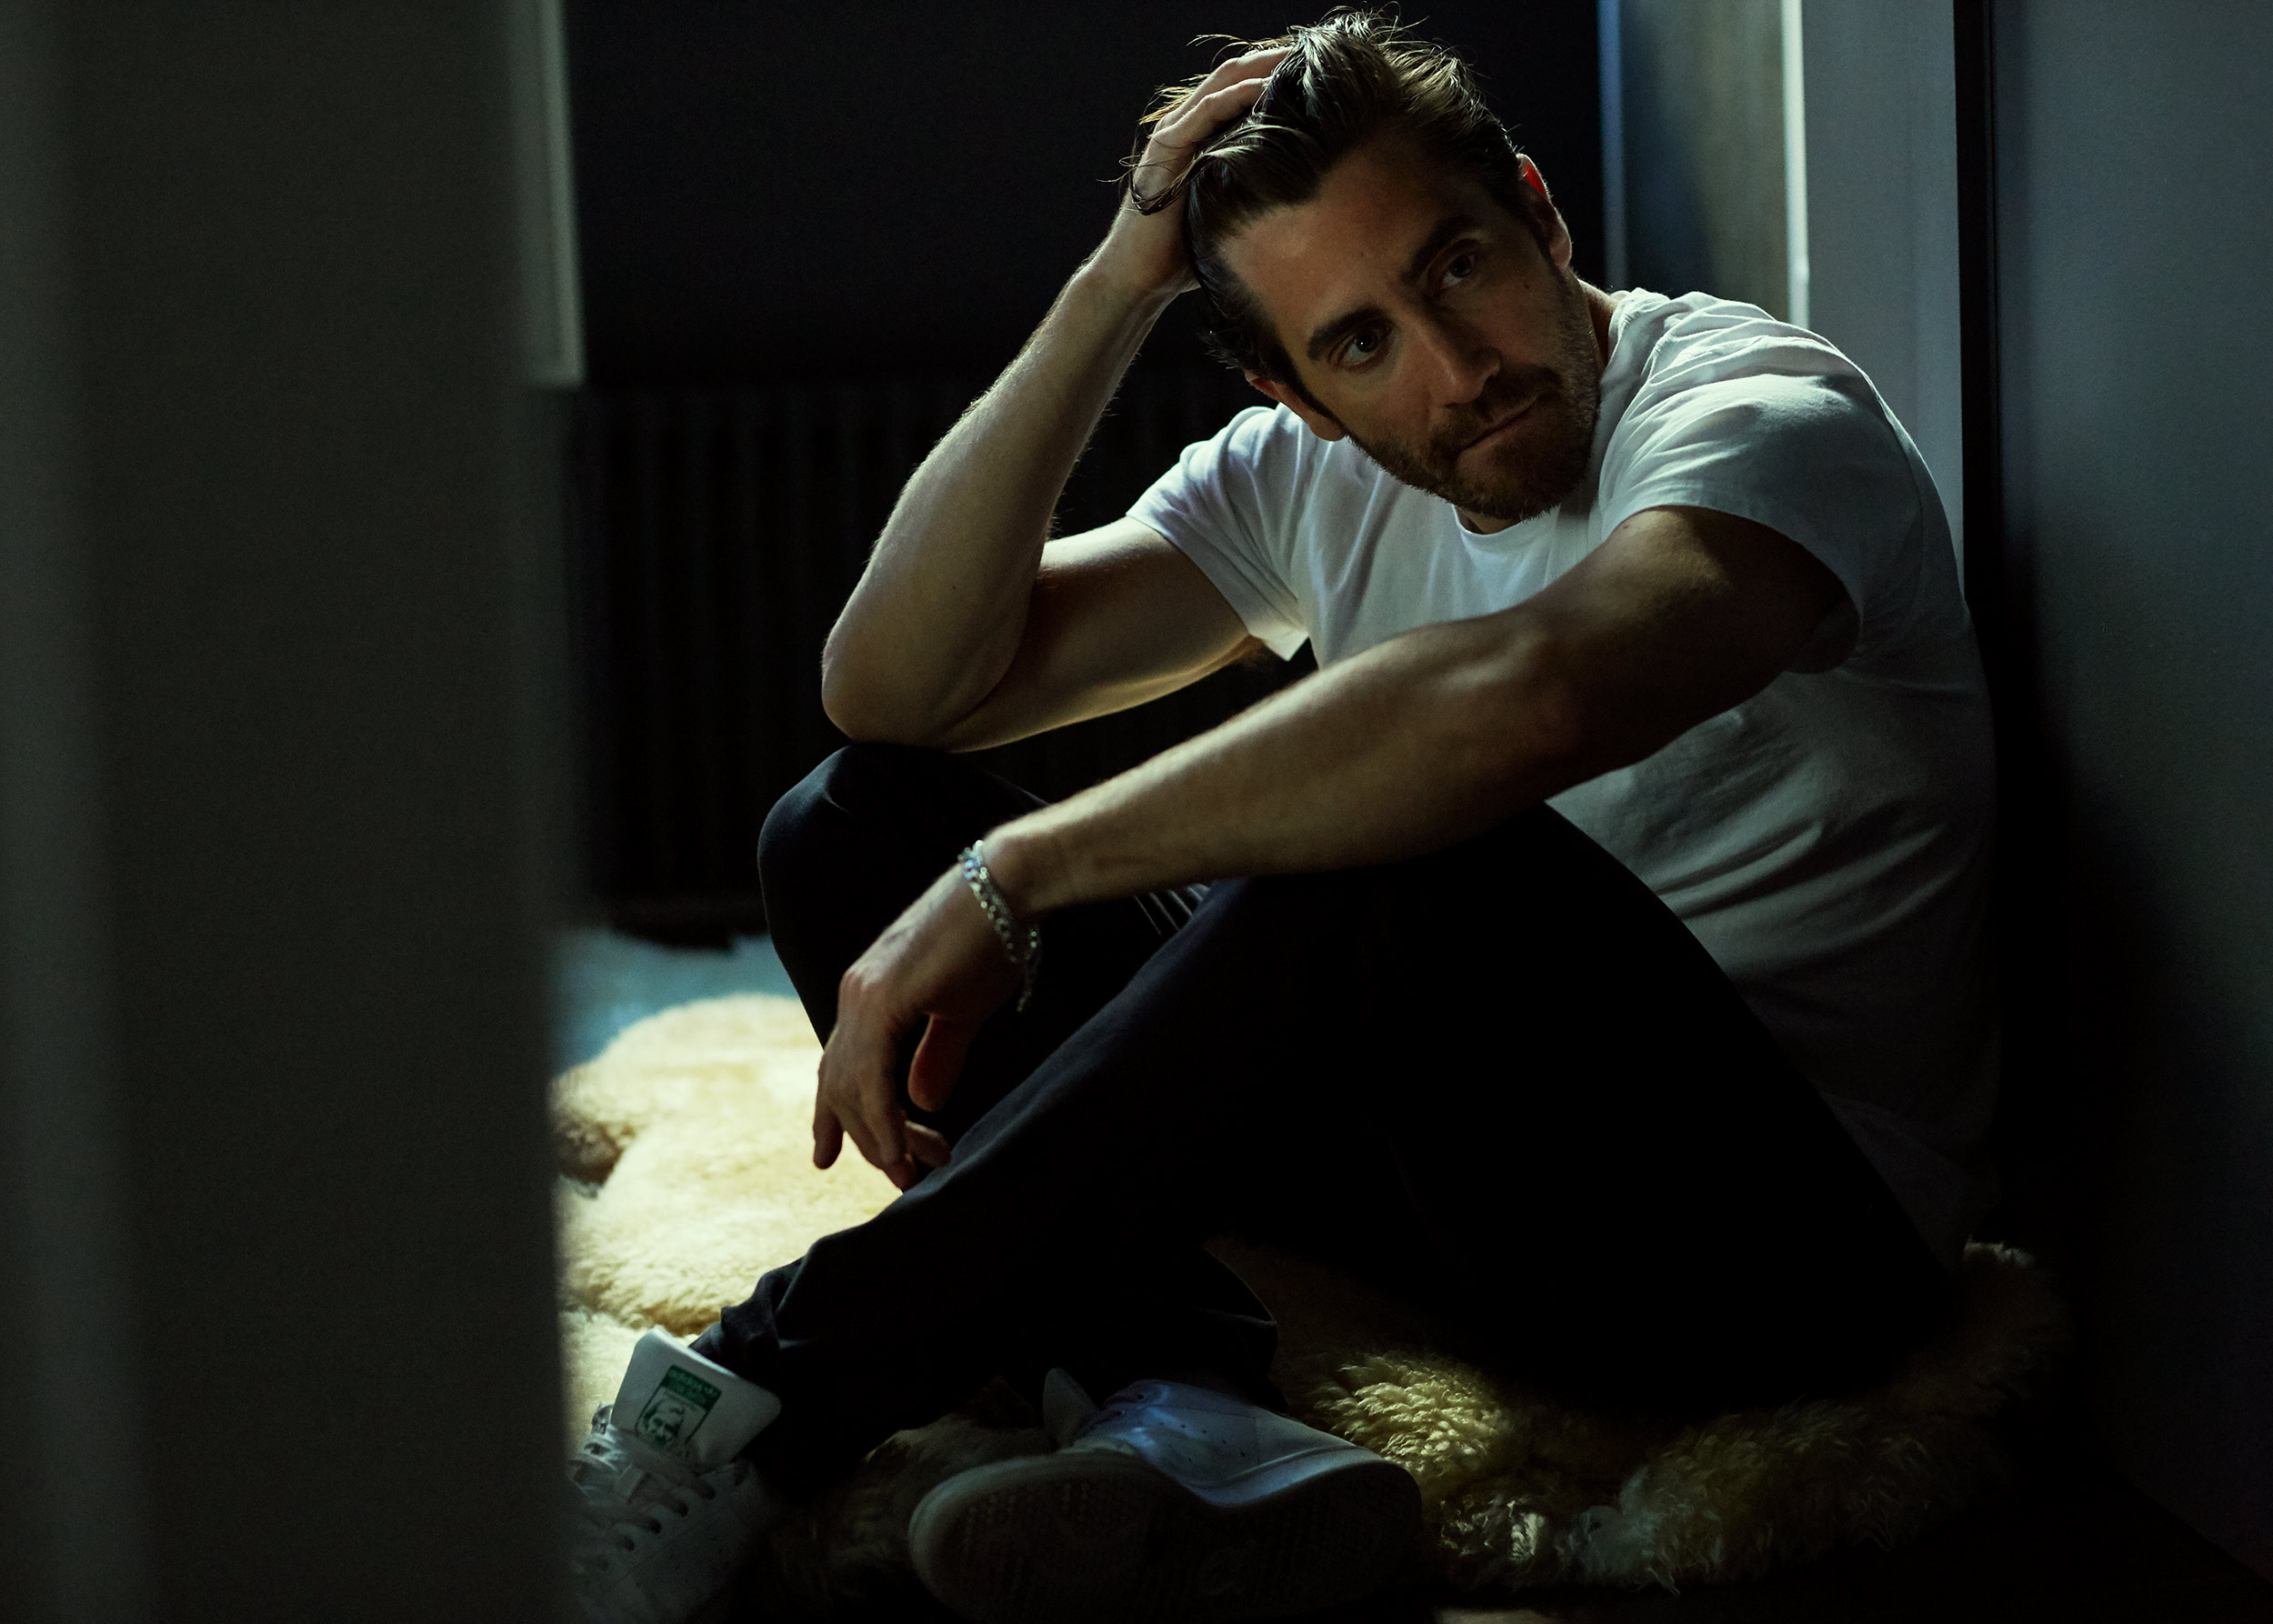 Jake Gyllenhaal photographed in New York City